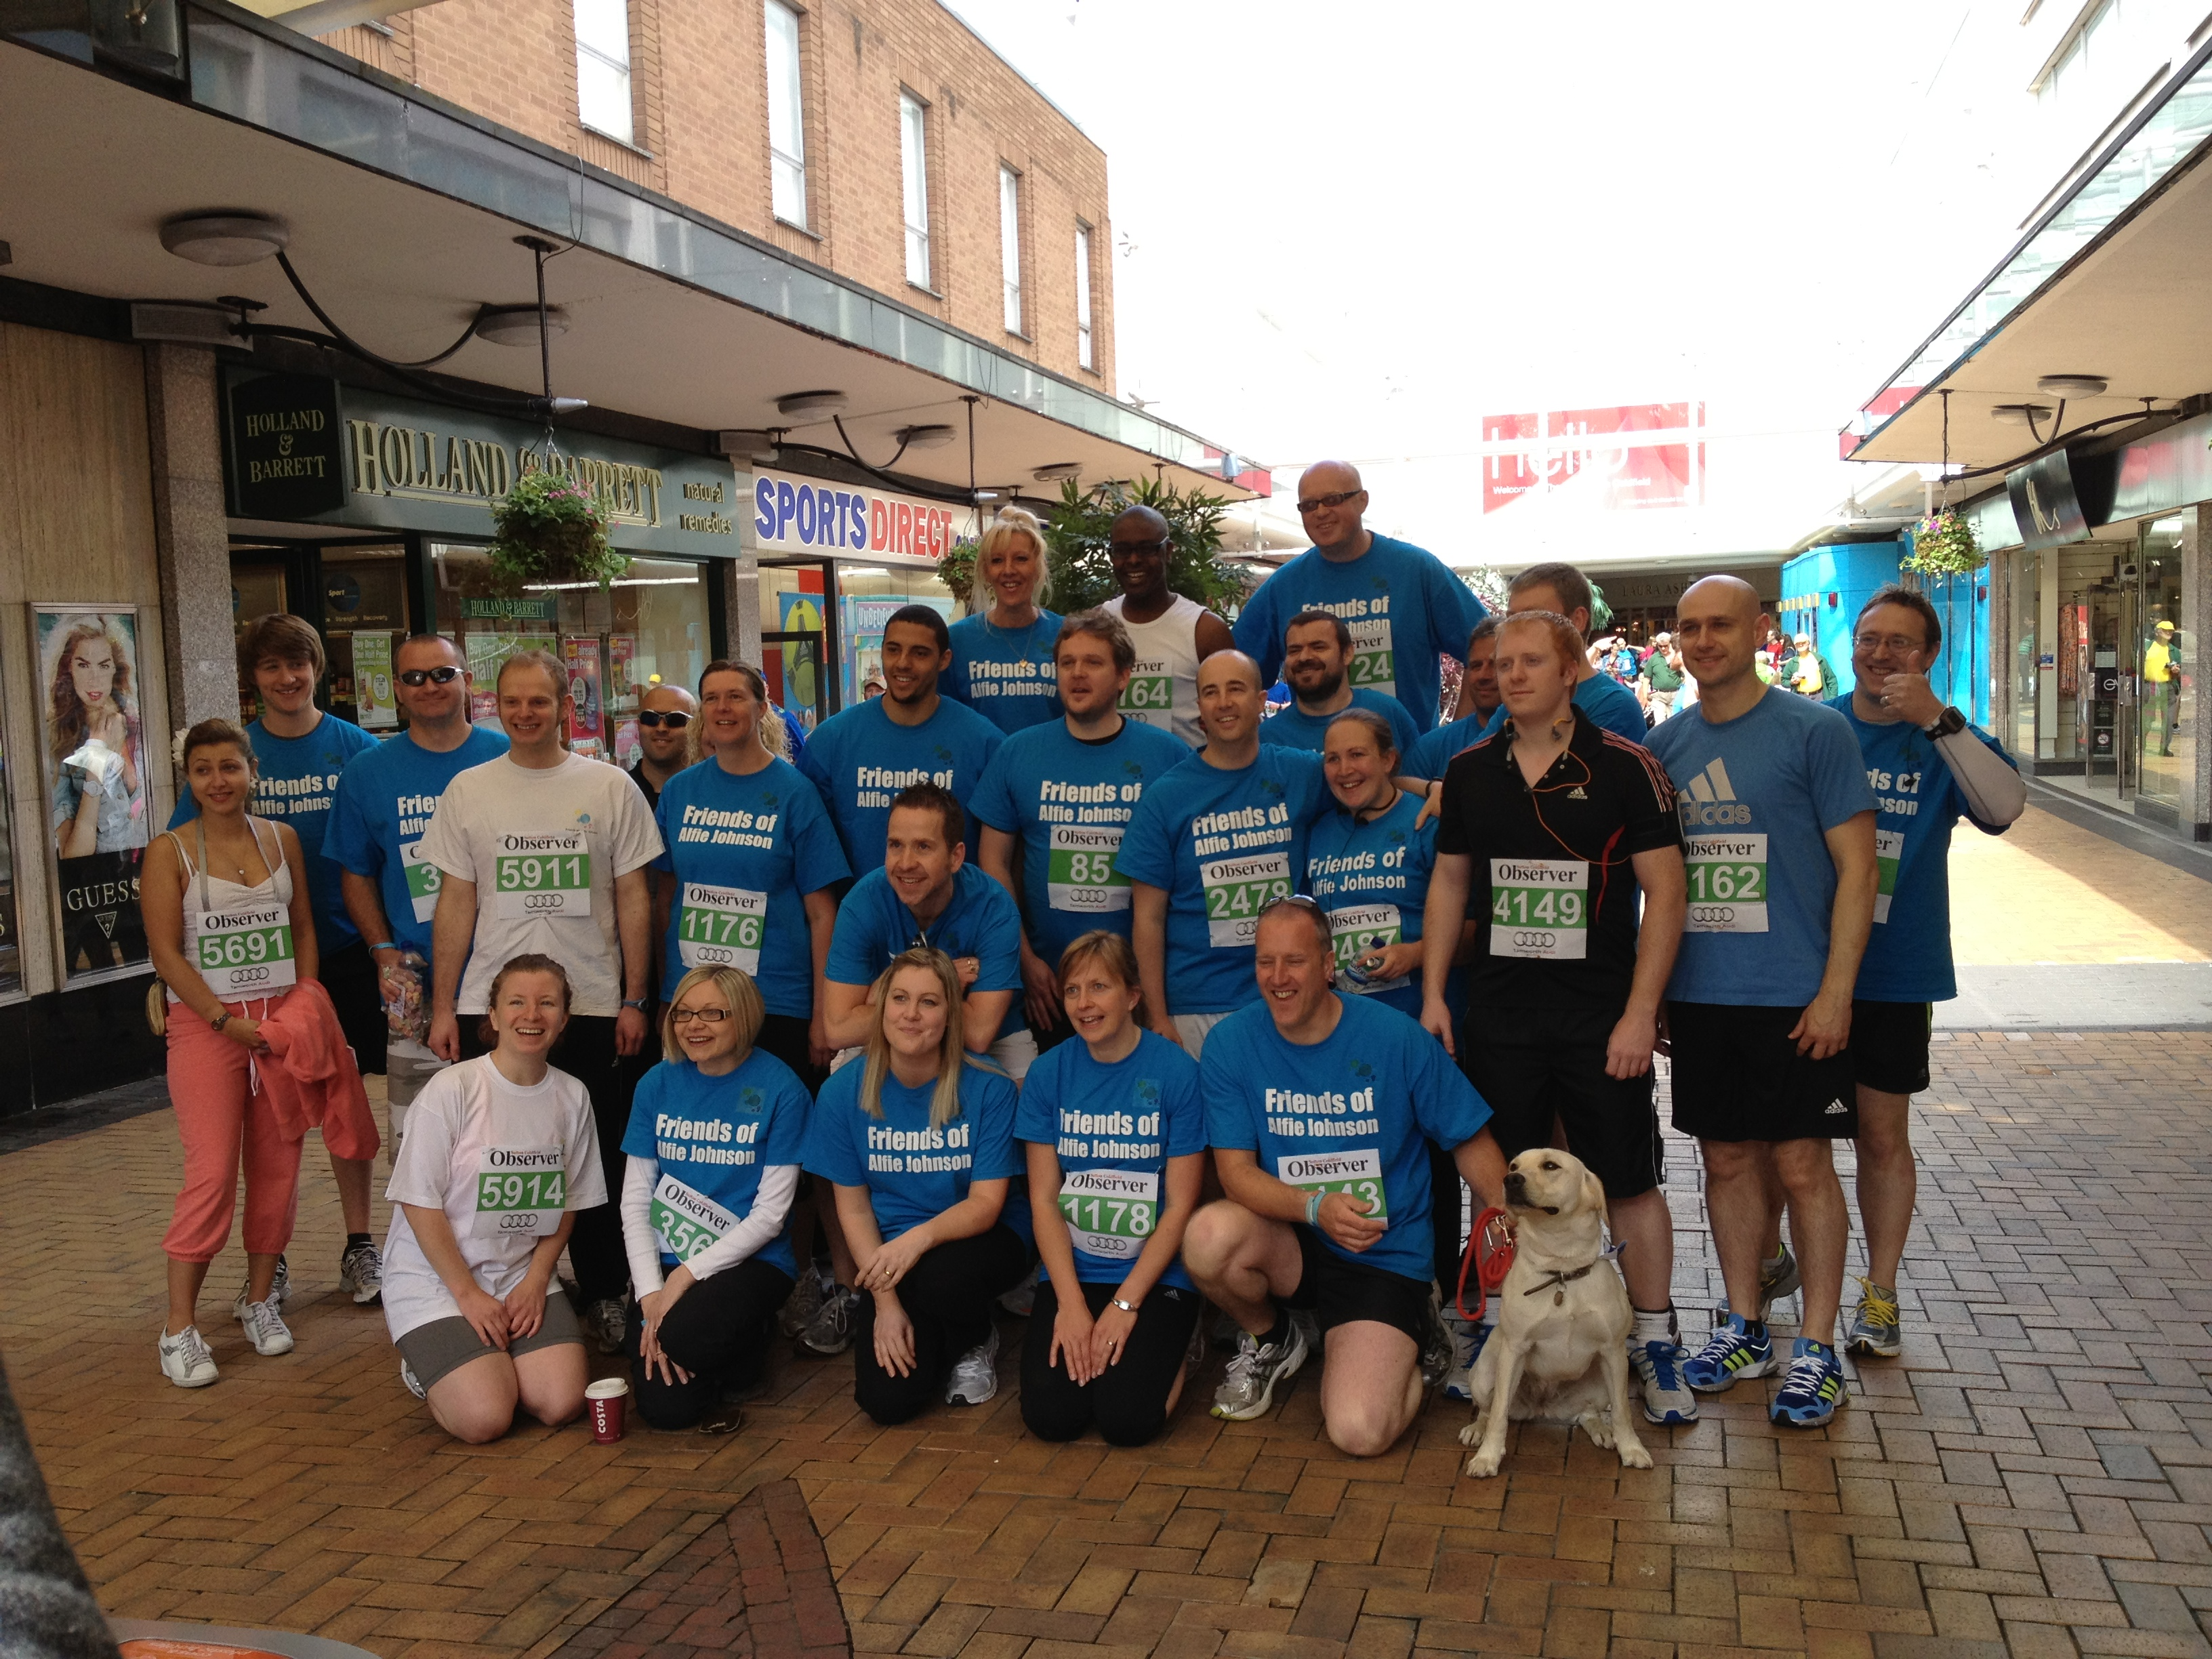 Andrew, Craig and Suzanne running for Lewis Smith & Co in the Great Midlands Fun Run